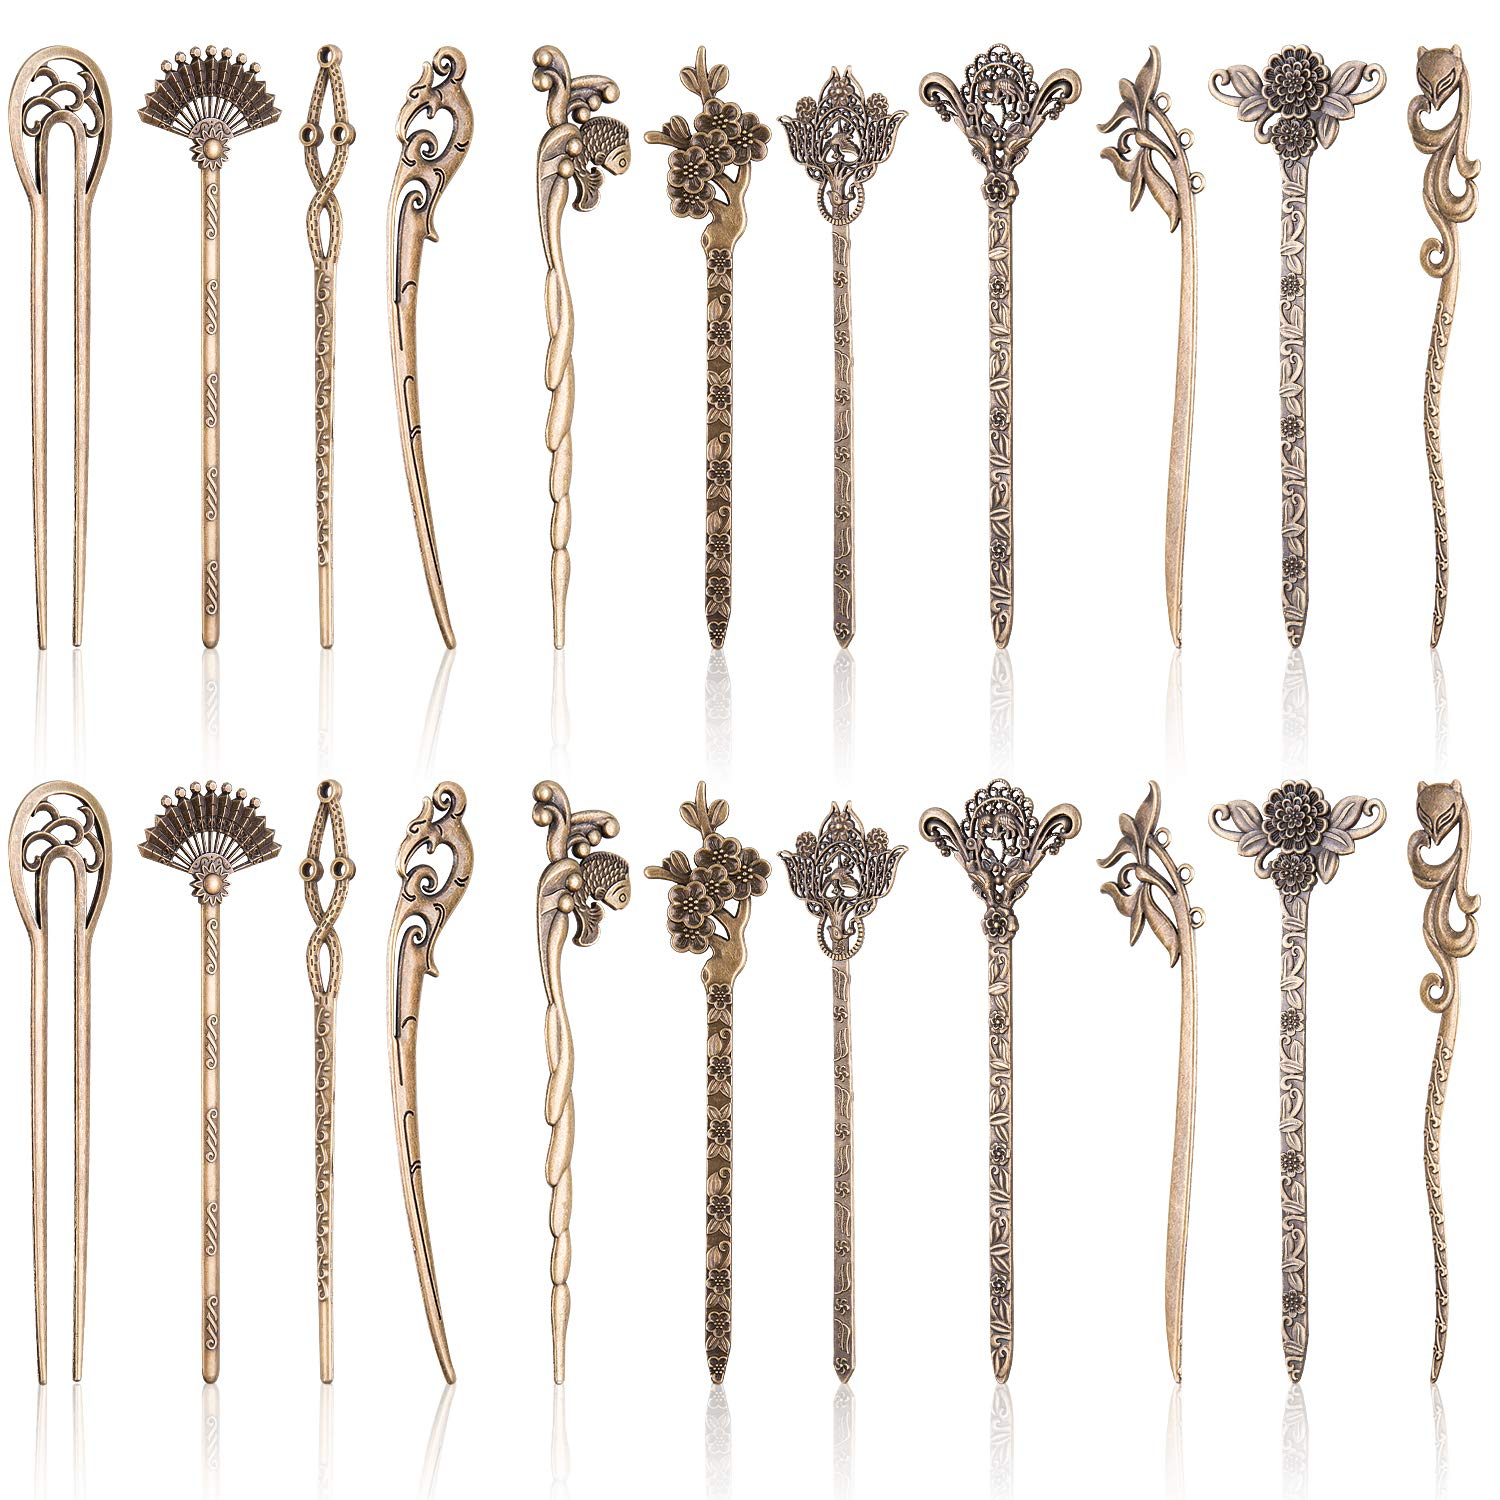 Duufin 22 Pieces Hair Sticks Vintage Bronze Chinese Hair Chopstick Retro Hair Fork for Women by Duufin